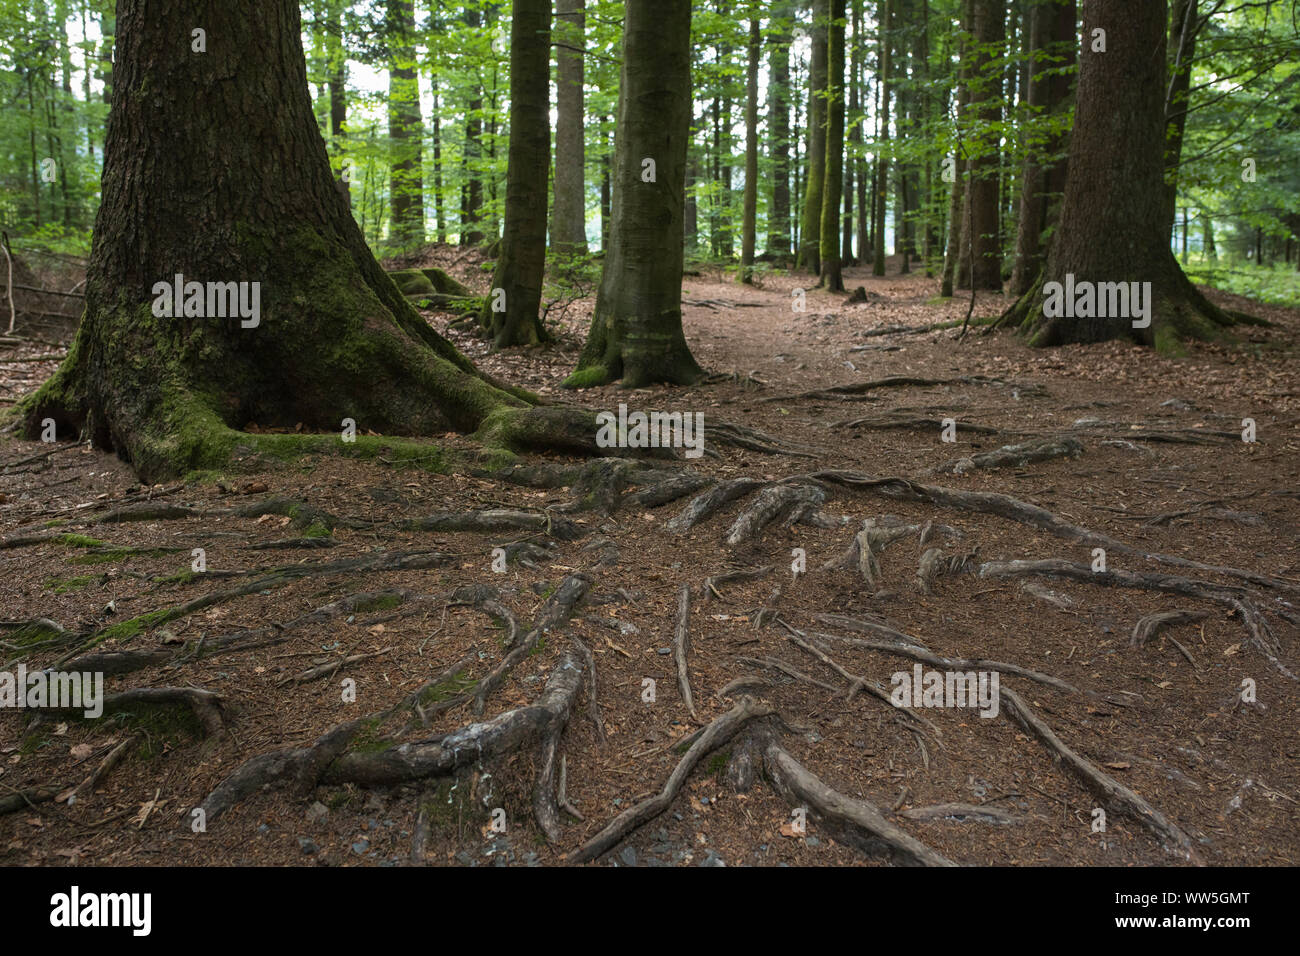 """Trees and roots in national park forest """"Bayerischer Wald"""", Bavaria, Germany Stock Photo"""